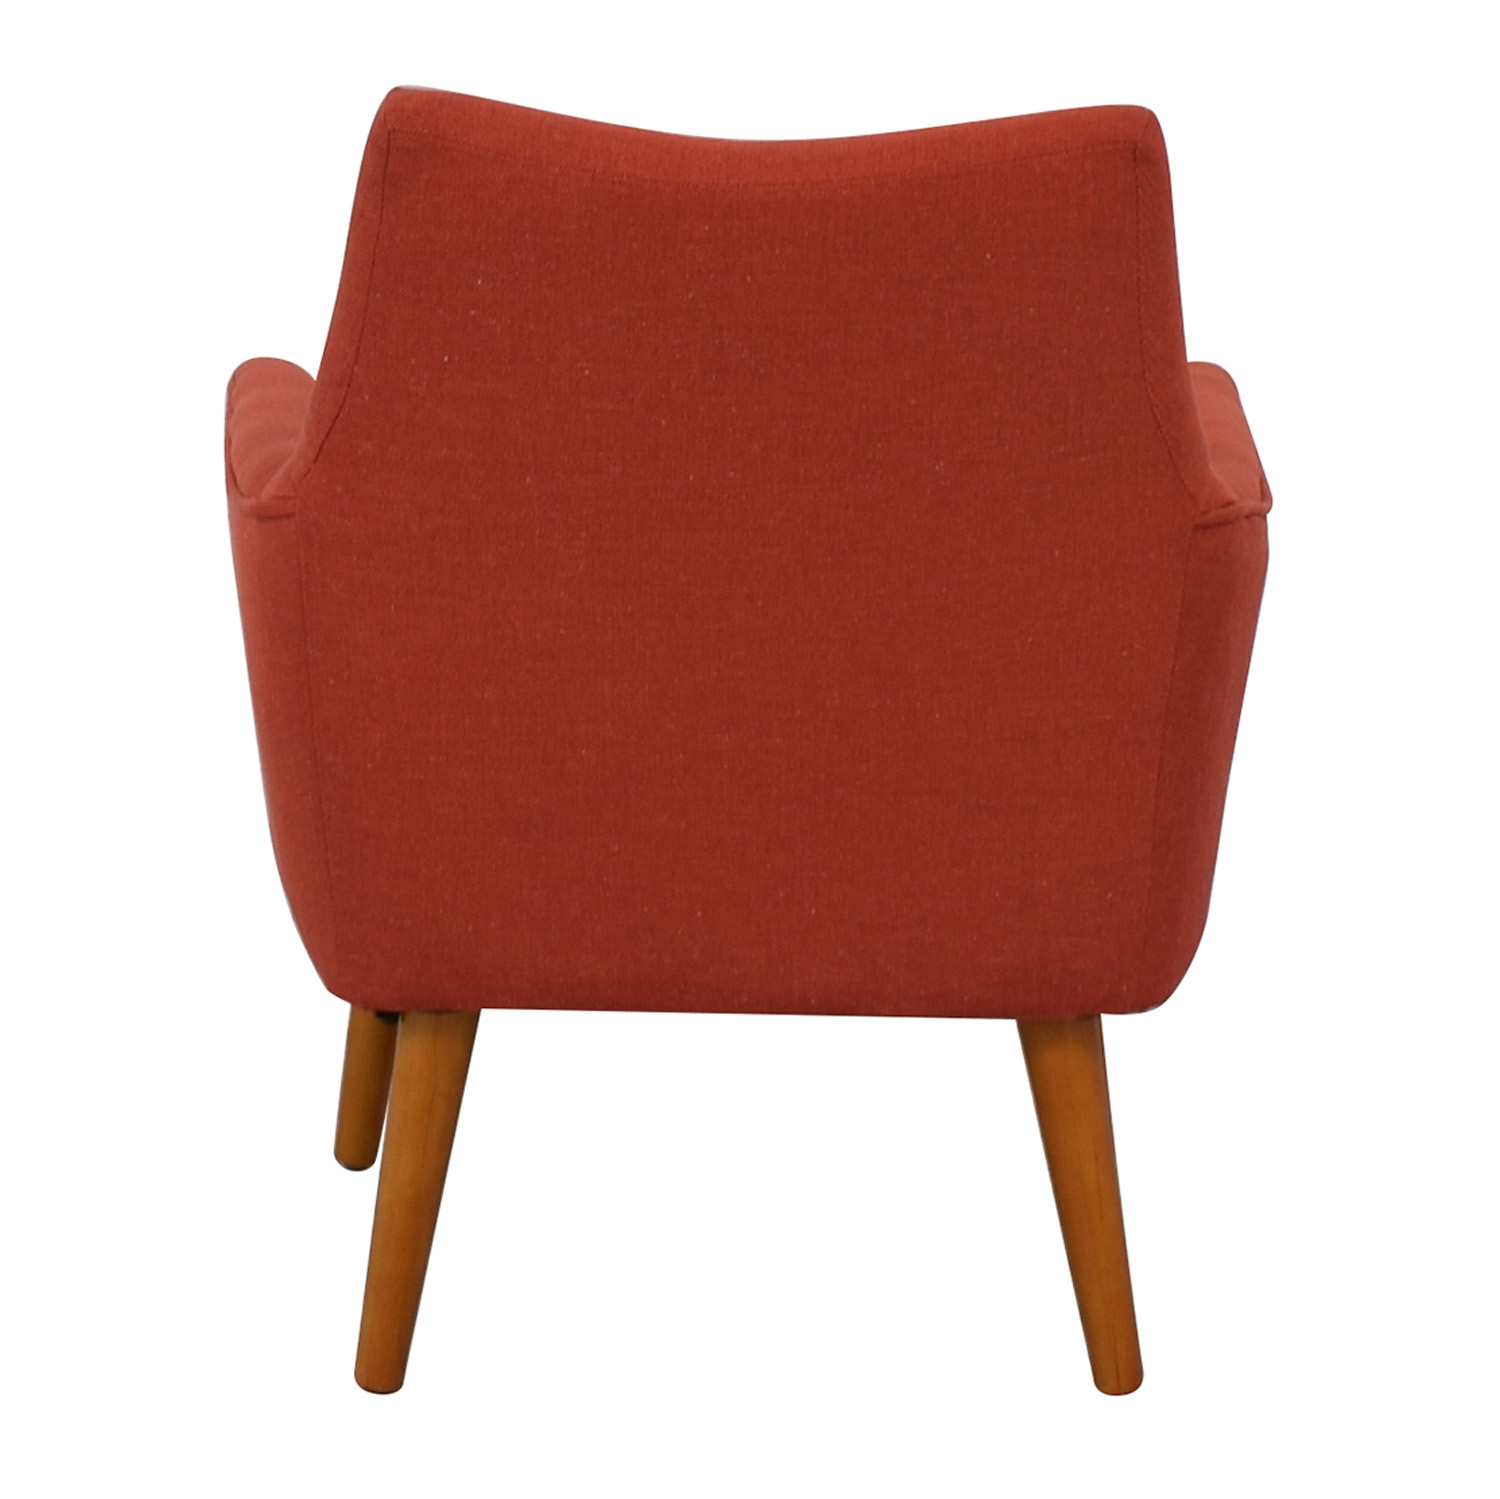 West Elm West Elm Mid Century Chair with Ottoman price